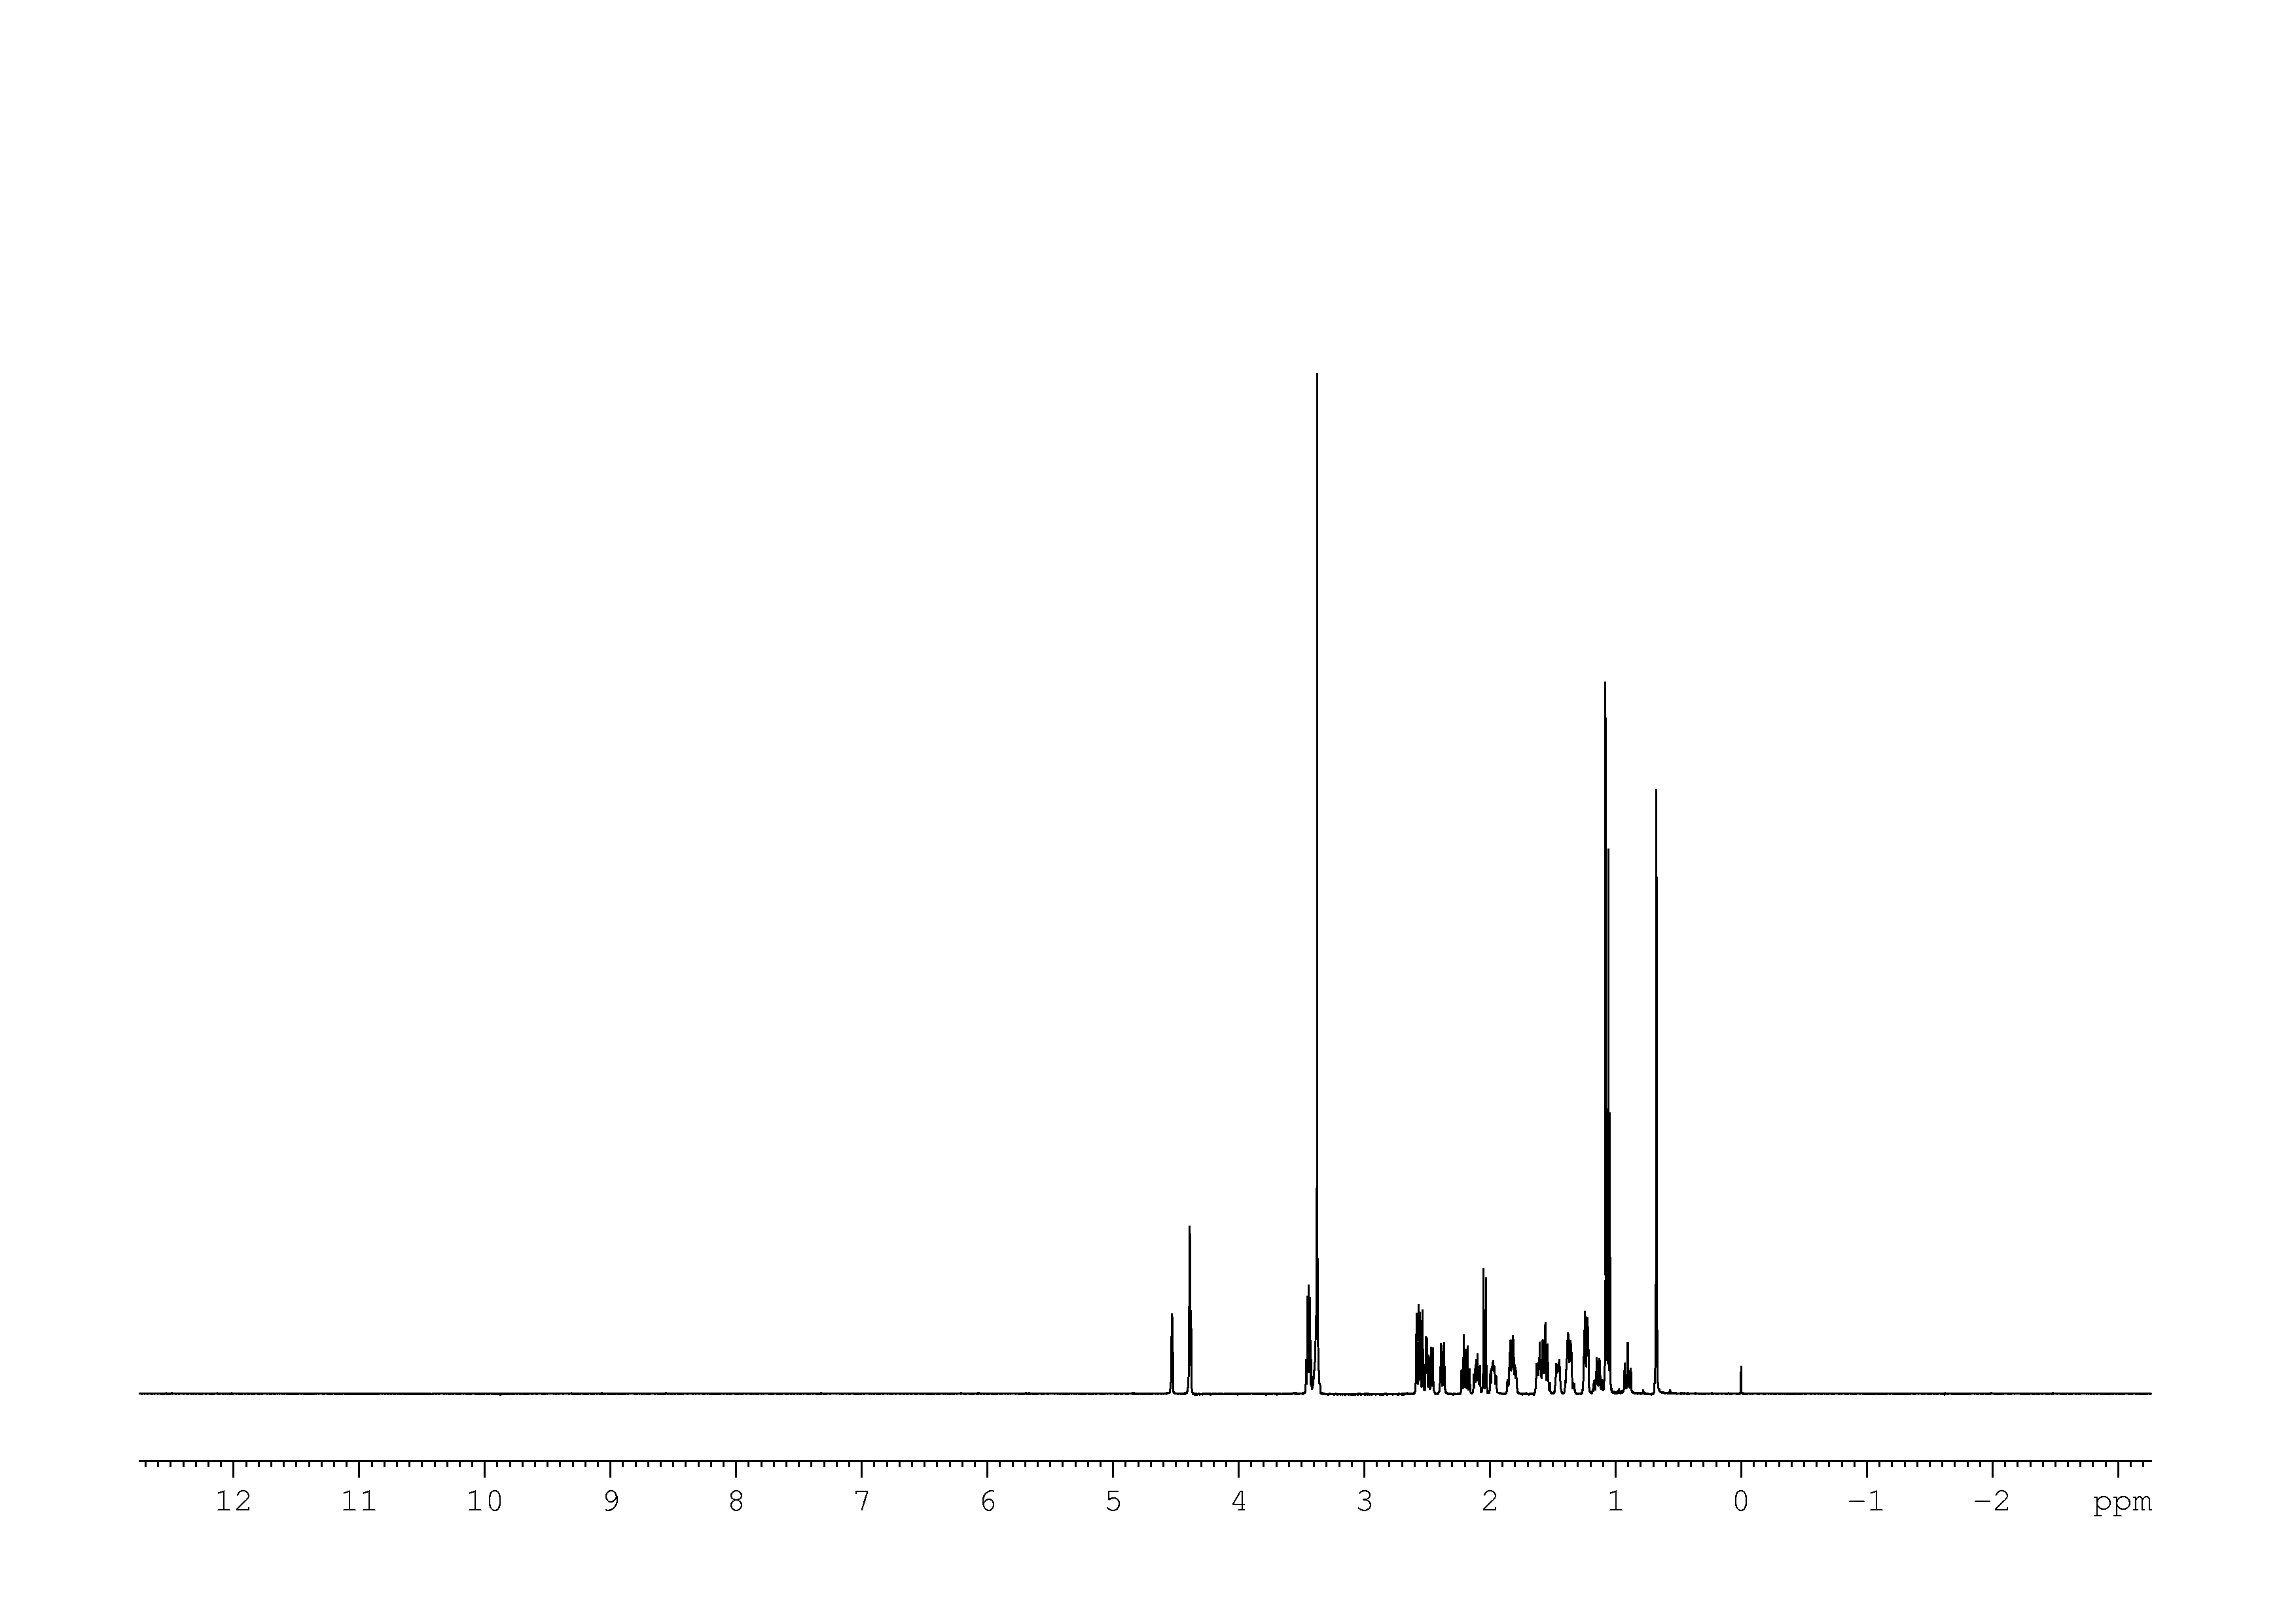 1D 1H, n/a spectrum for 11-Ketoetiocholanolone